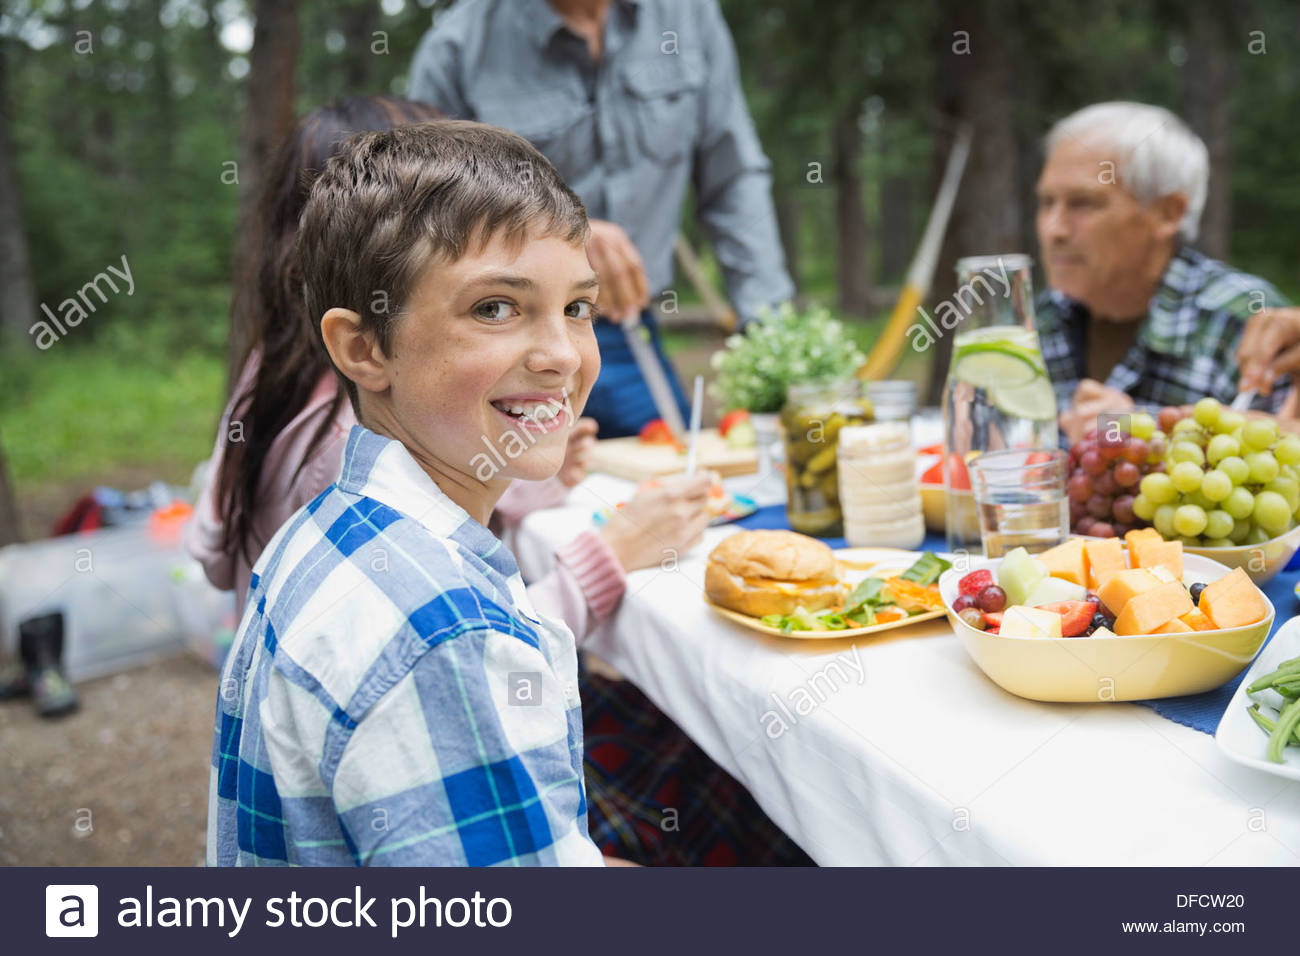 Portrait of boy having meal with family at campsite - Stock Image